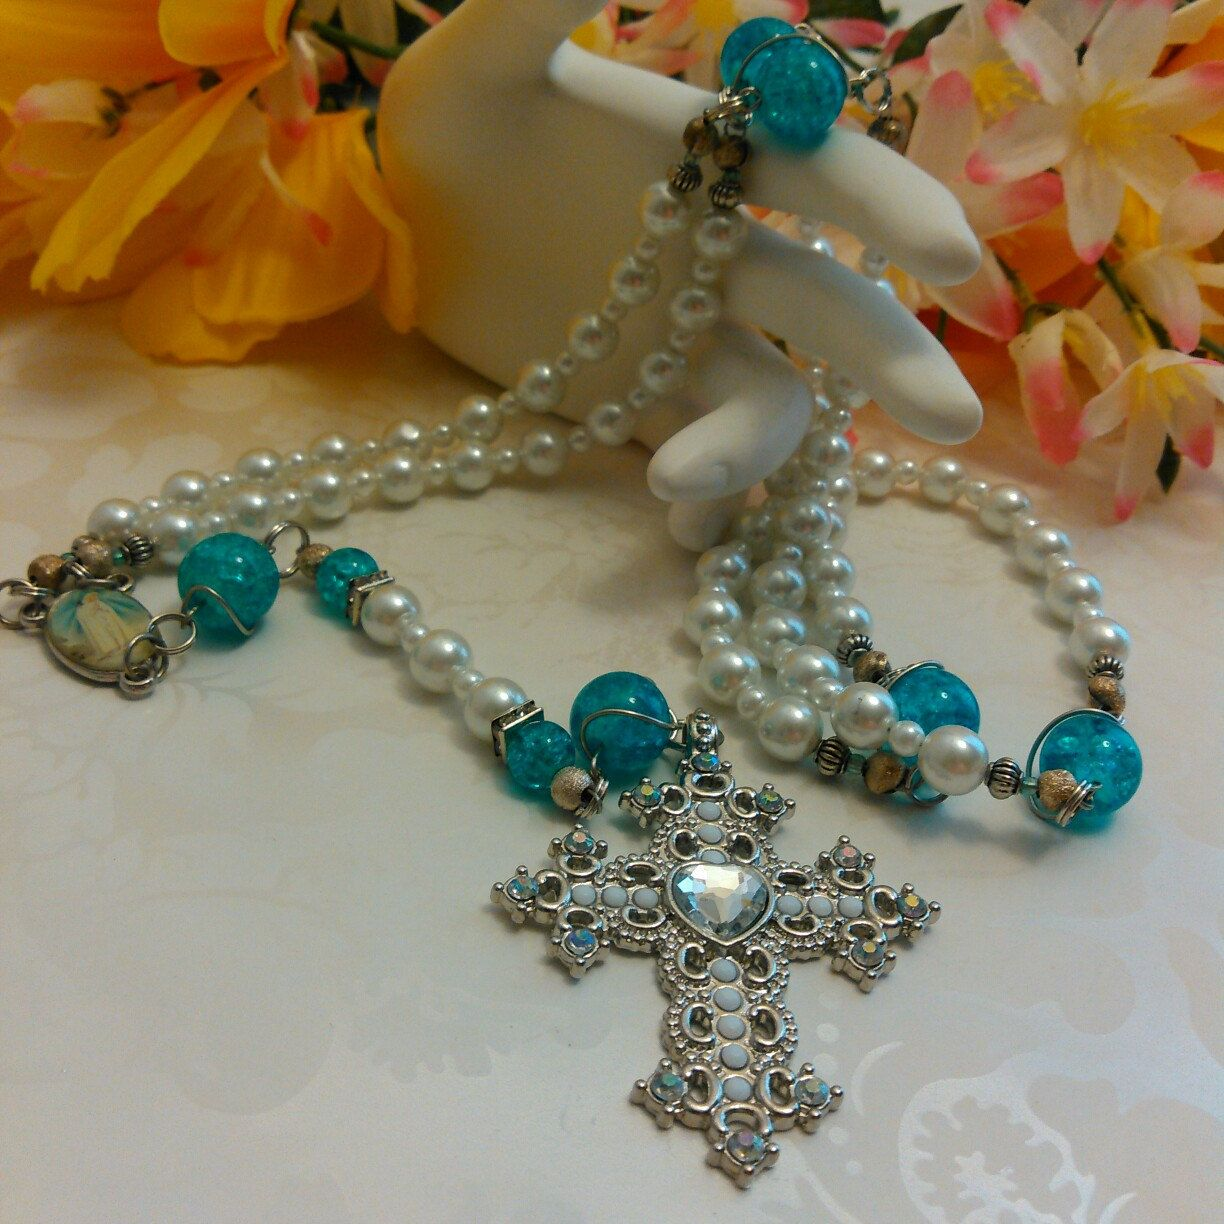 Park Art My WordPress Blog_How To Hold Rosary Beads With One Hand